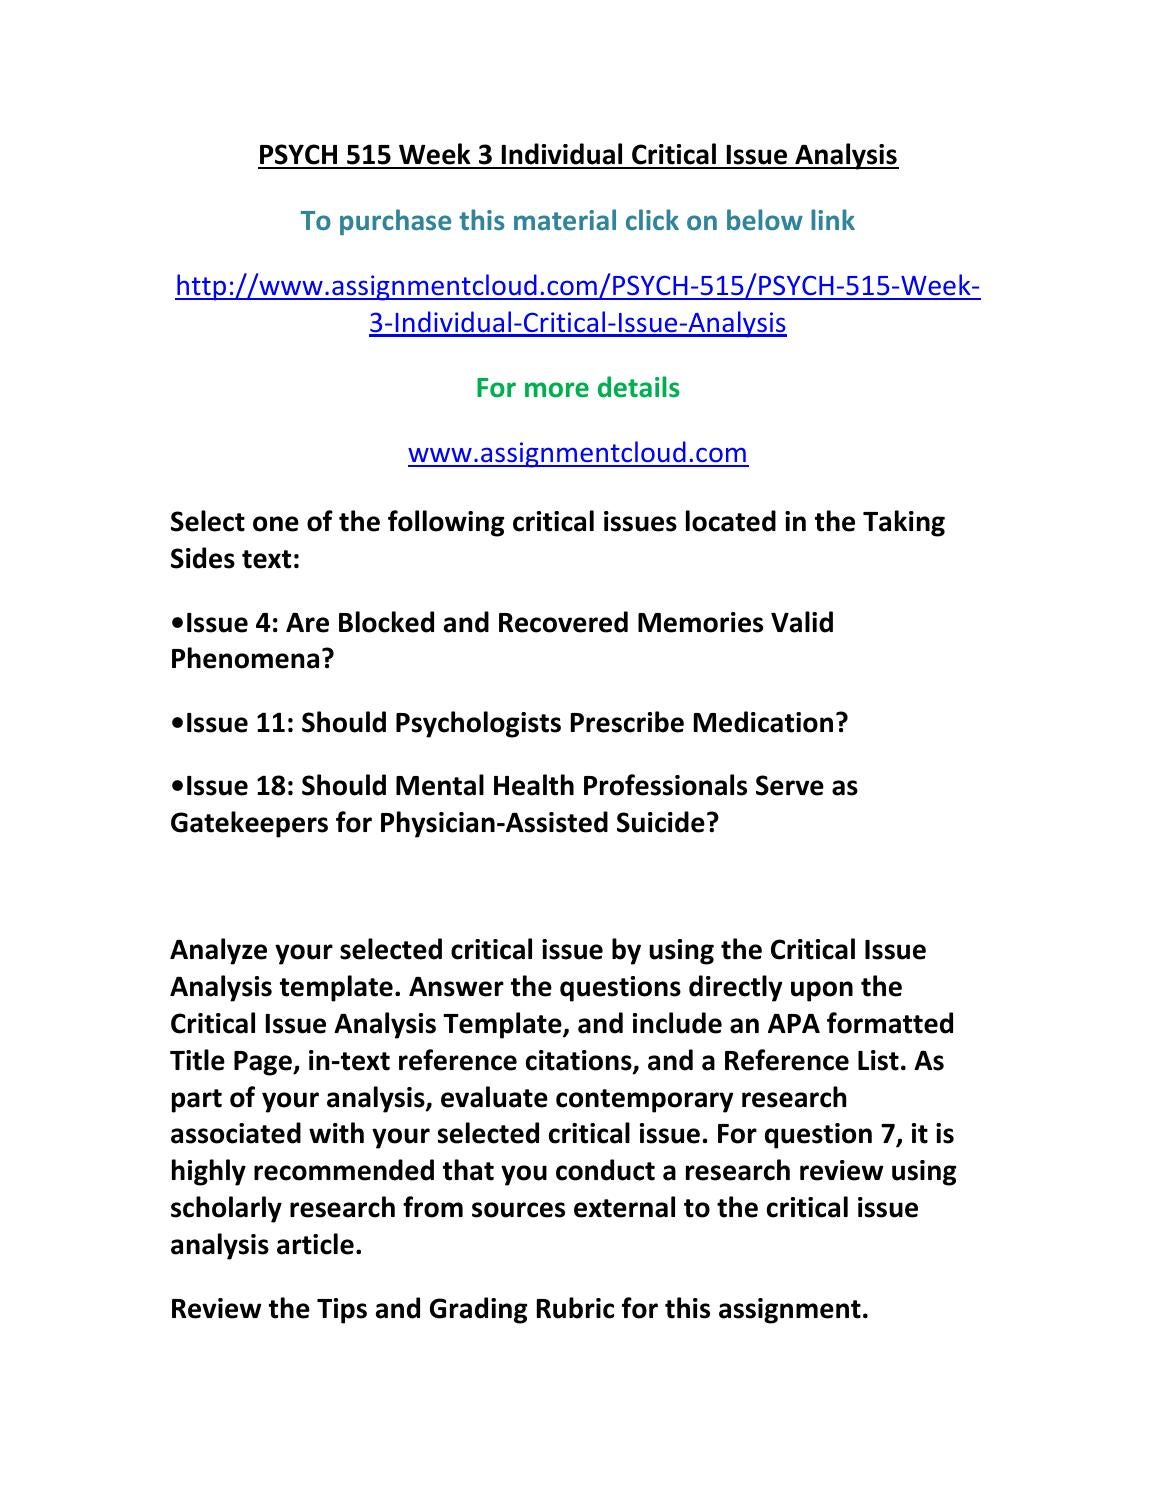 Why Psychologist Should Not Prescribe Medication Essay Sample